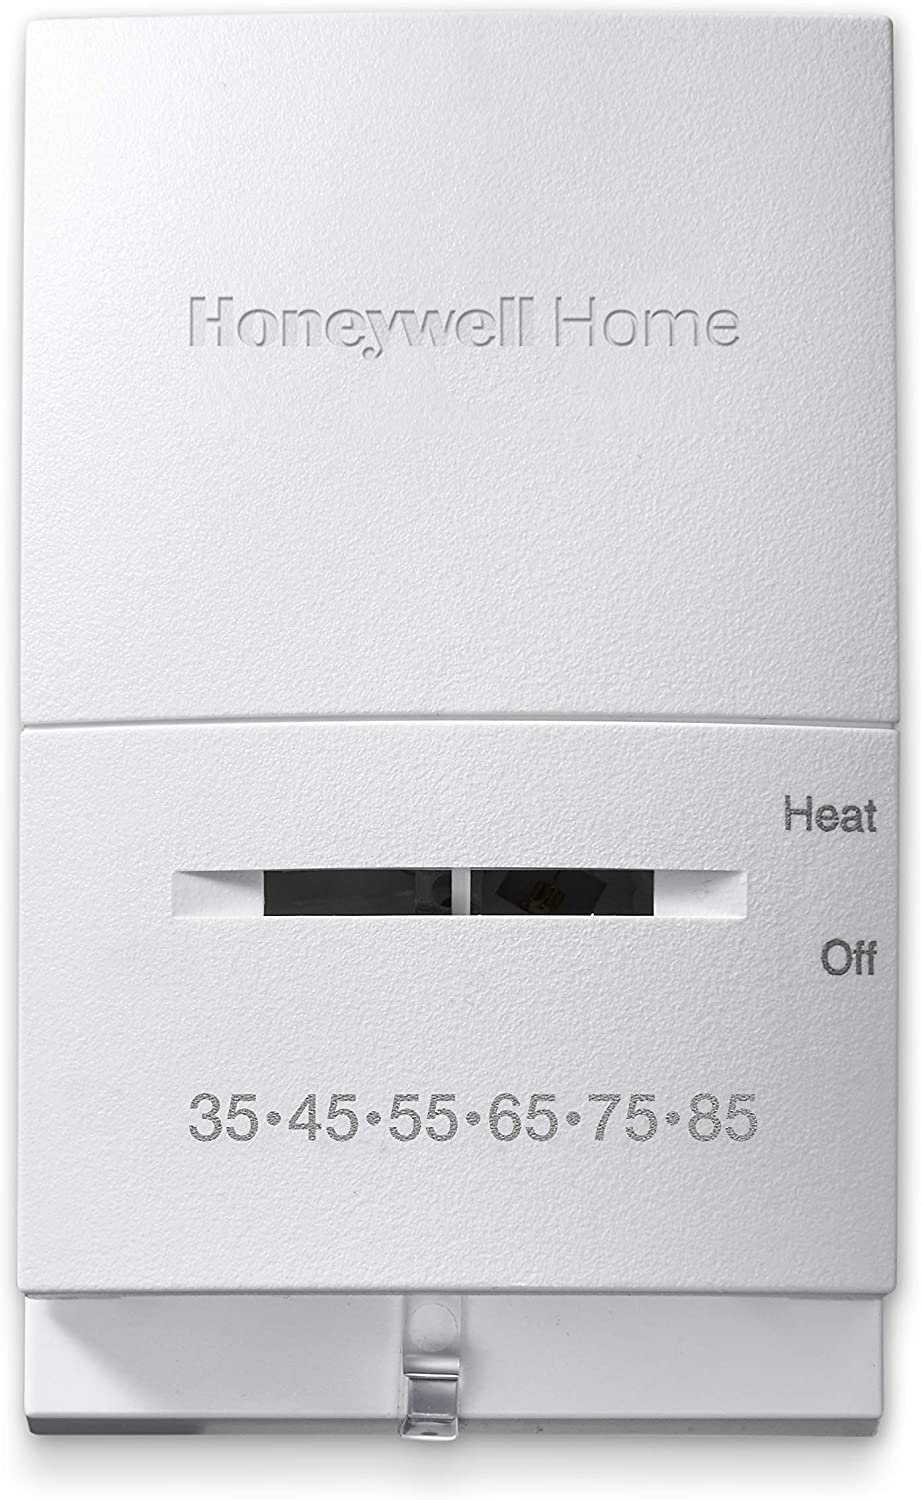 Honeywell Home CT50K1028 CT50K Non-Programmable Manual Thermostat, White